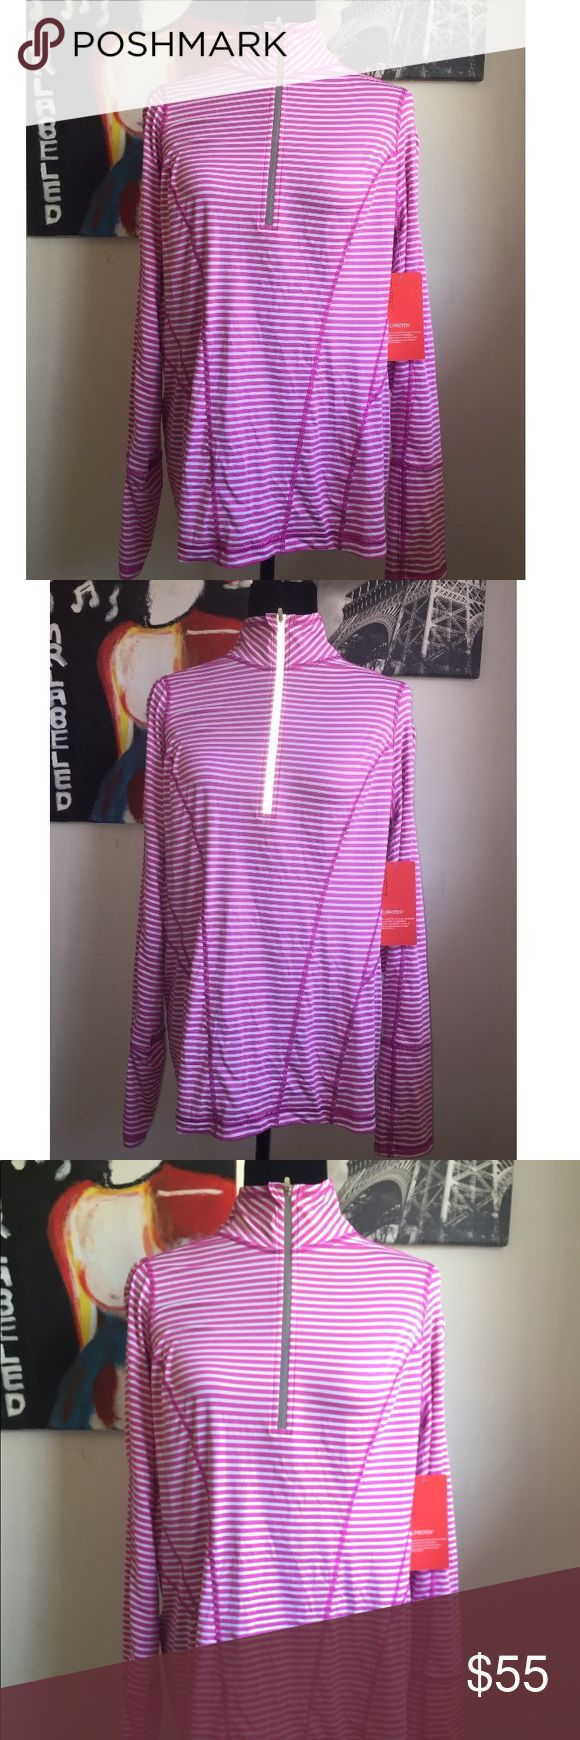 NWT Zella Thermal Pink and white striped thermal. NWT. Size Xlarge. Anti cling soft fabric for added comfort. 2nd picture is with the flash on. Zella Tops Tees - Long Sleeve